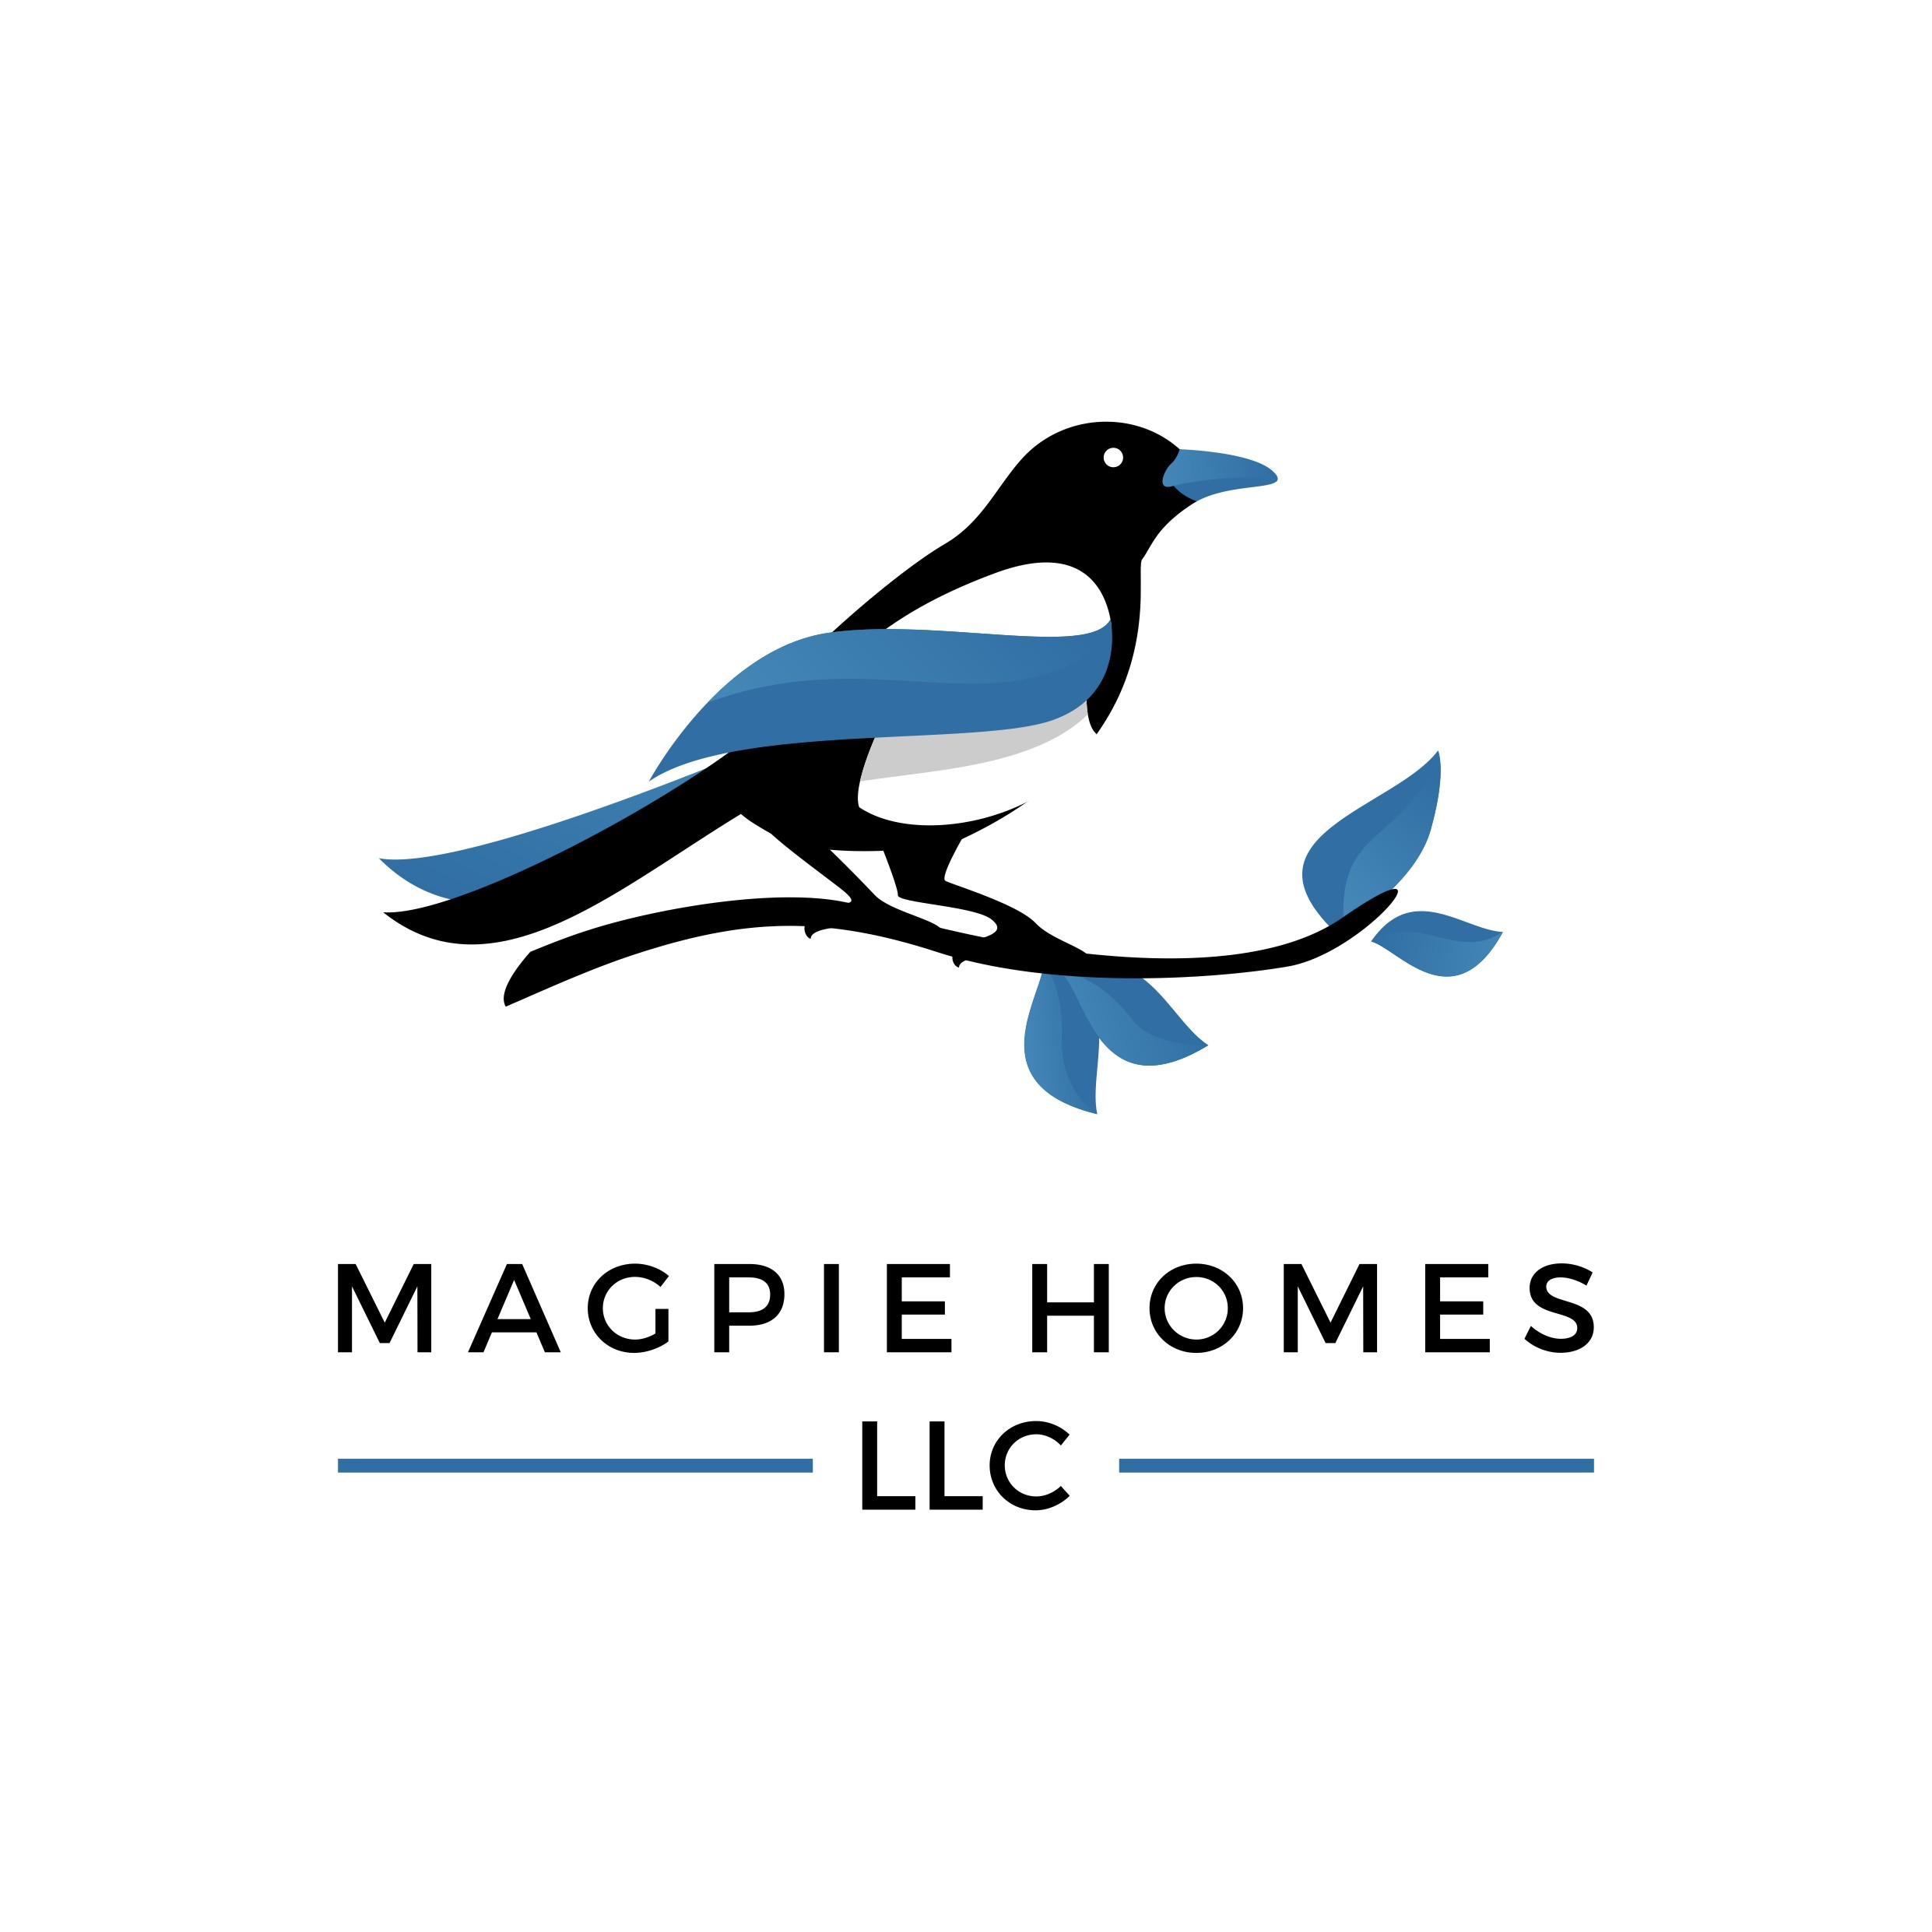 Create a solid logo to convey trust, honesty, and customer service for Magpie Homes, LLC